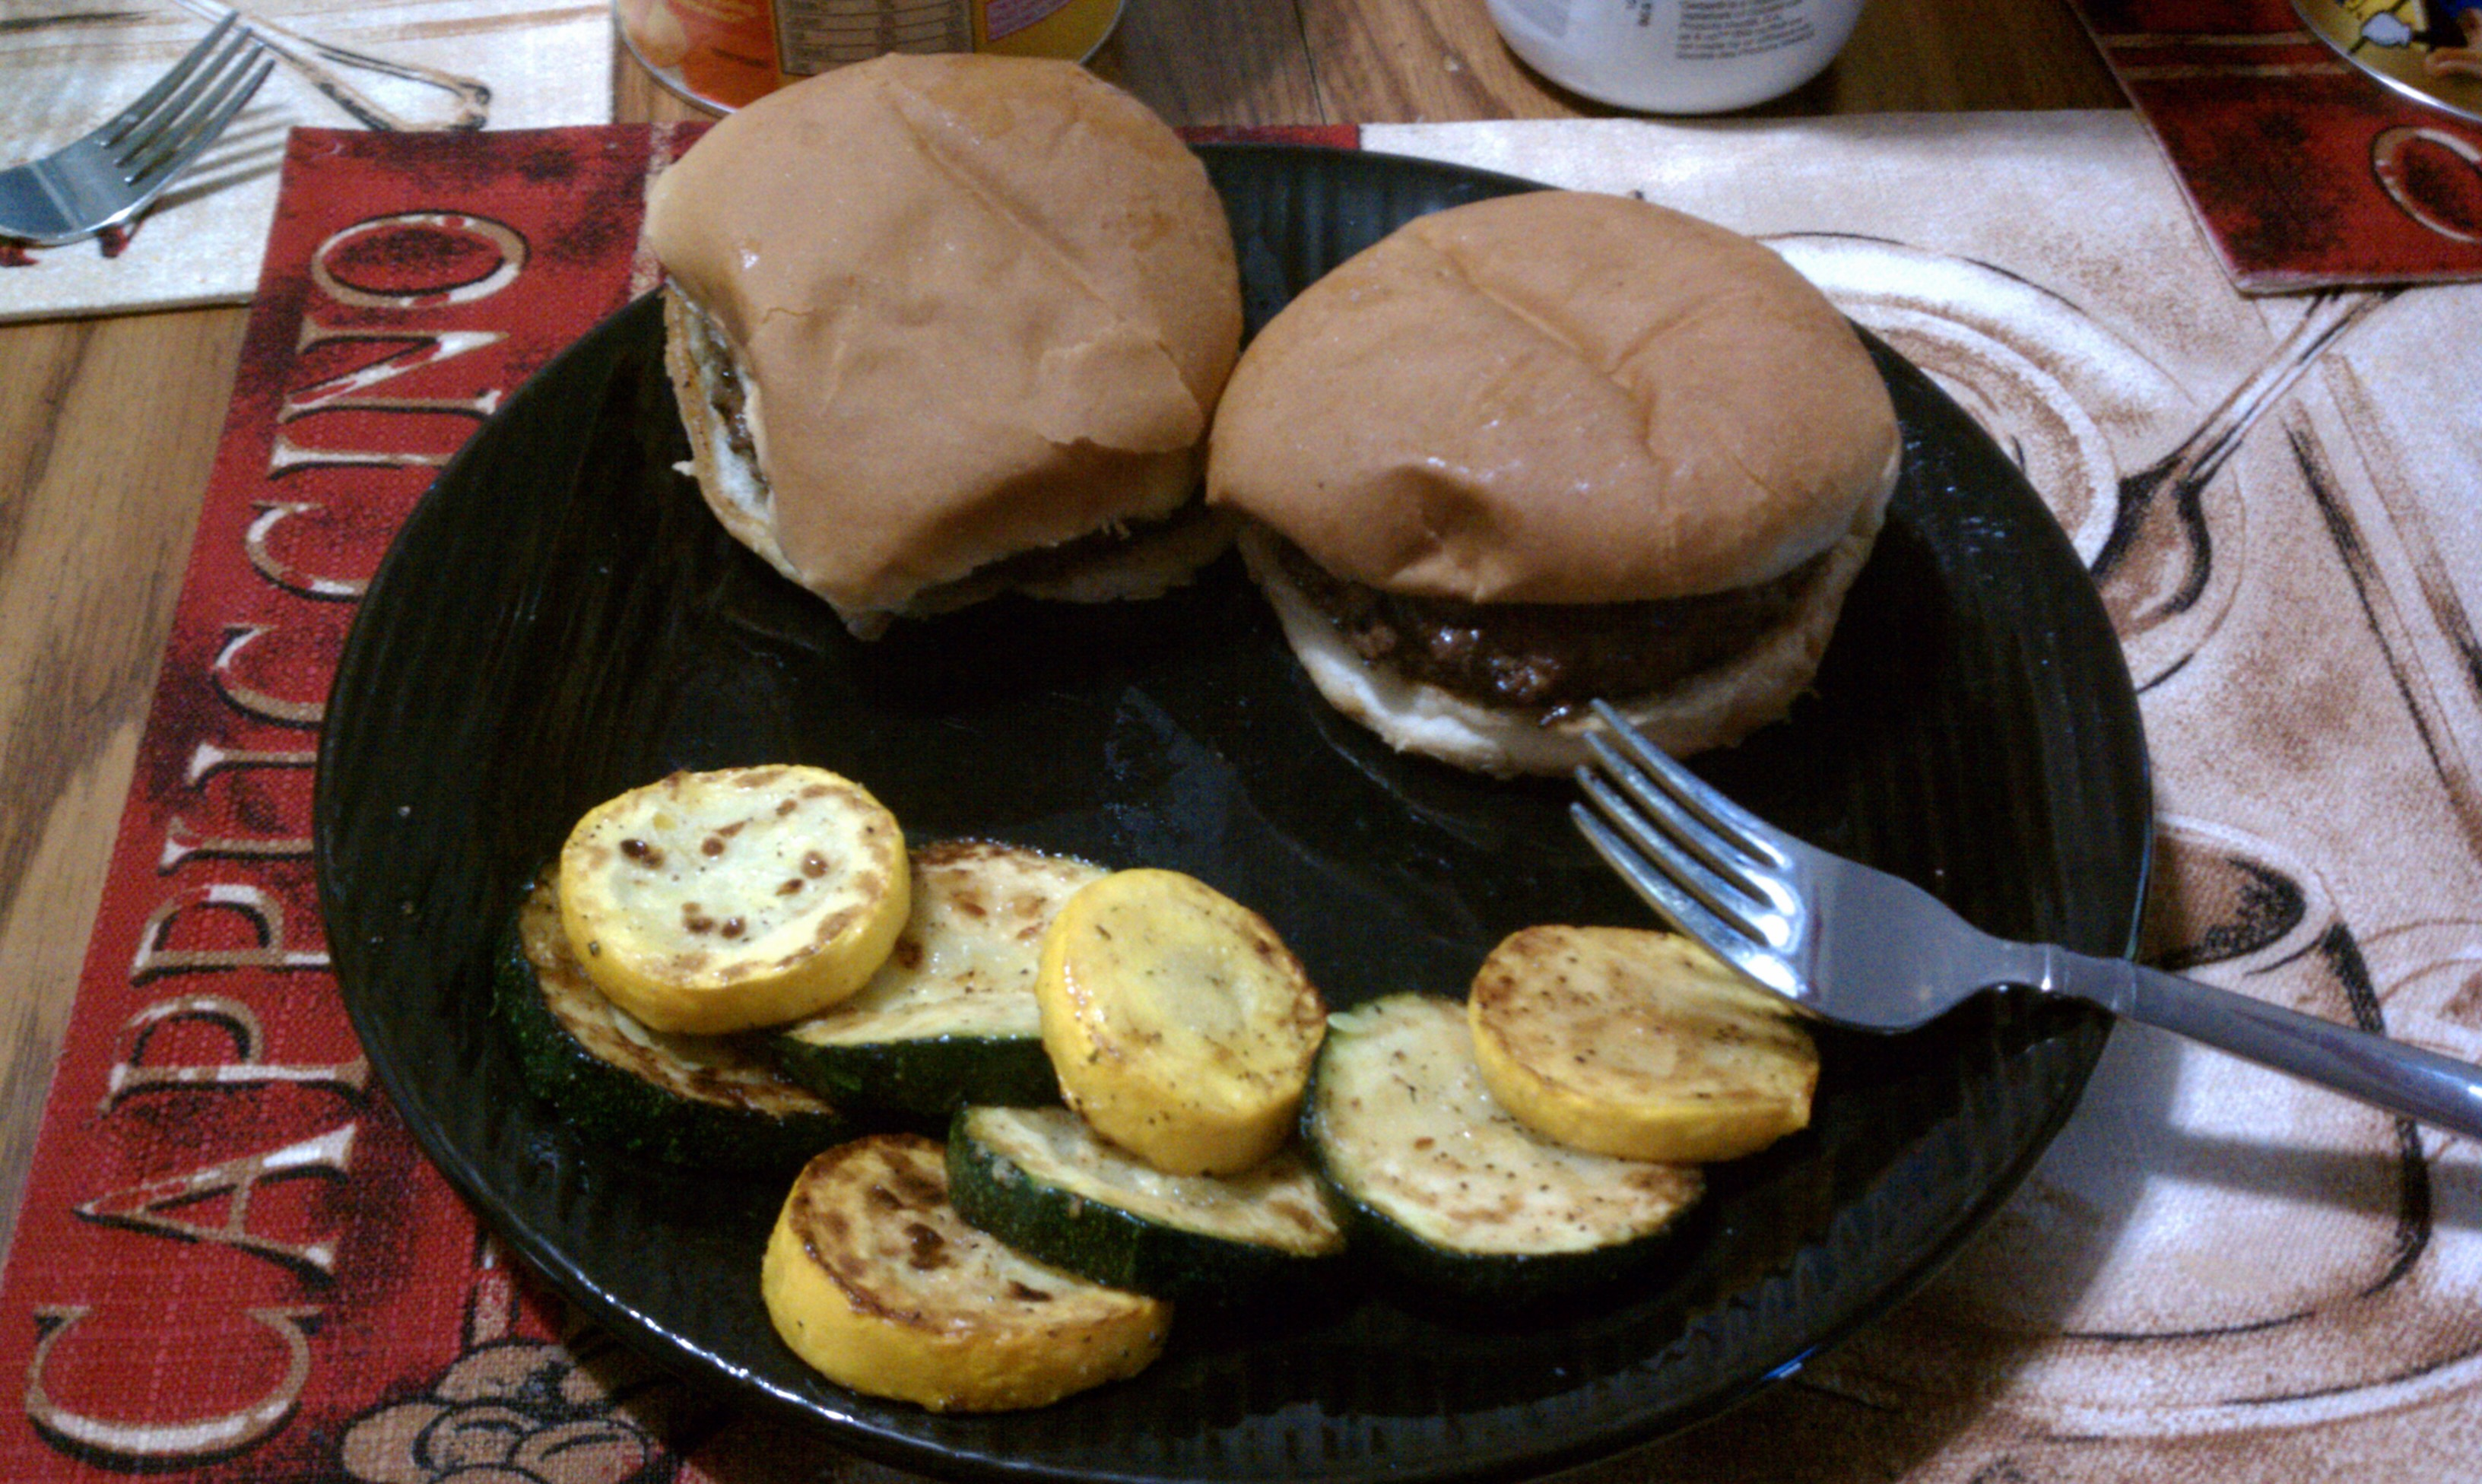 new britain ct :: memorial day burgers with green/yellow squash